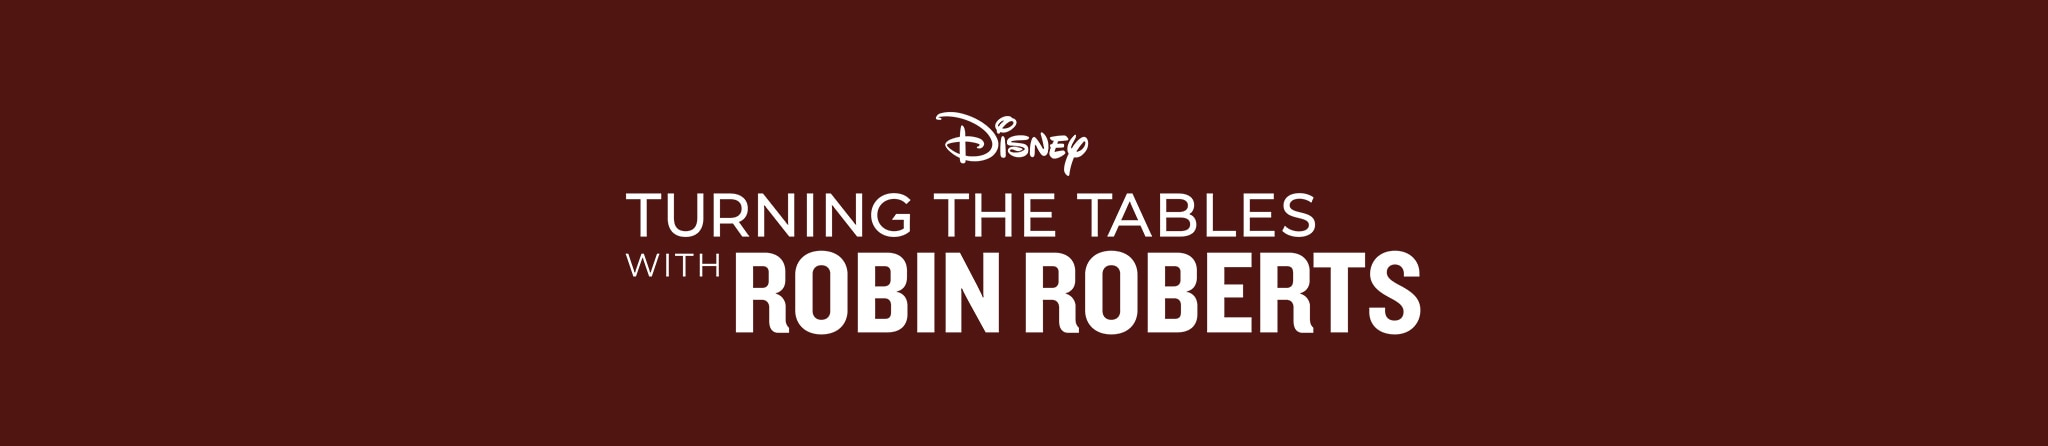 Disney   Turning the Tables with Robin Roberts